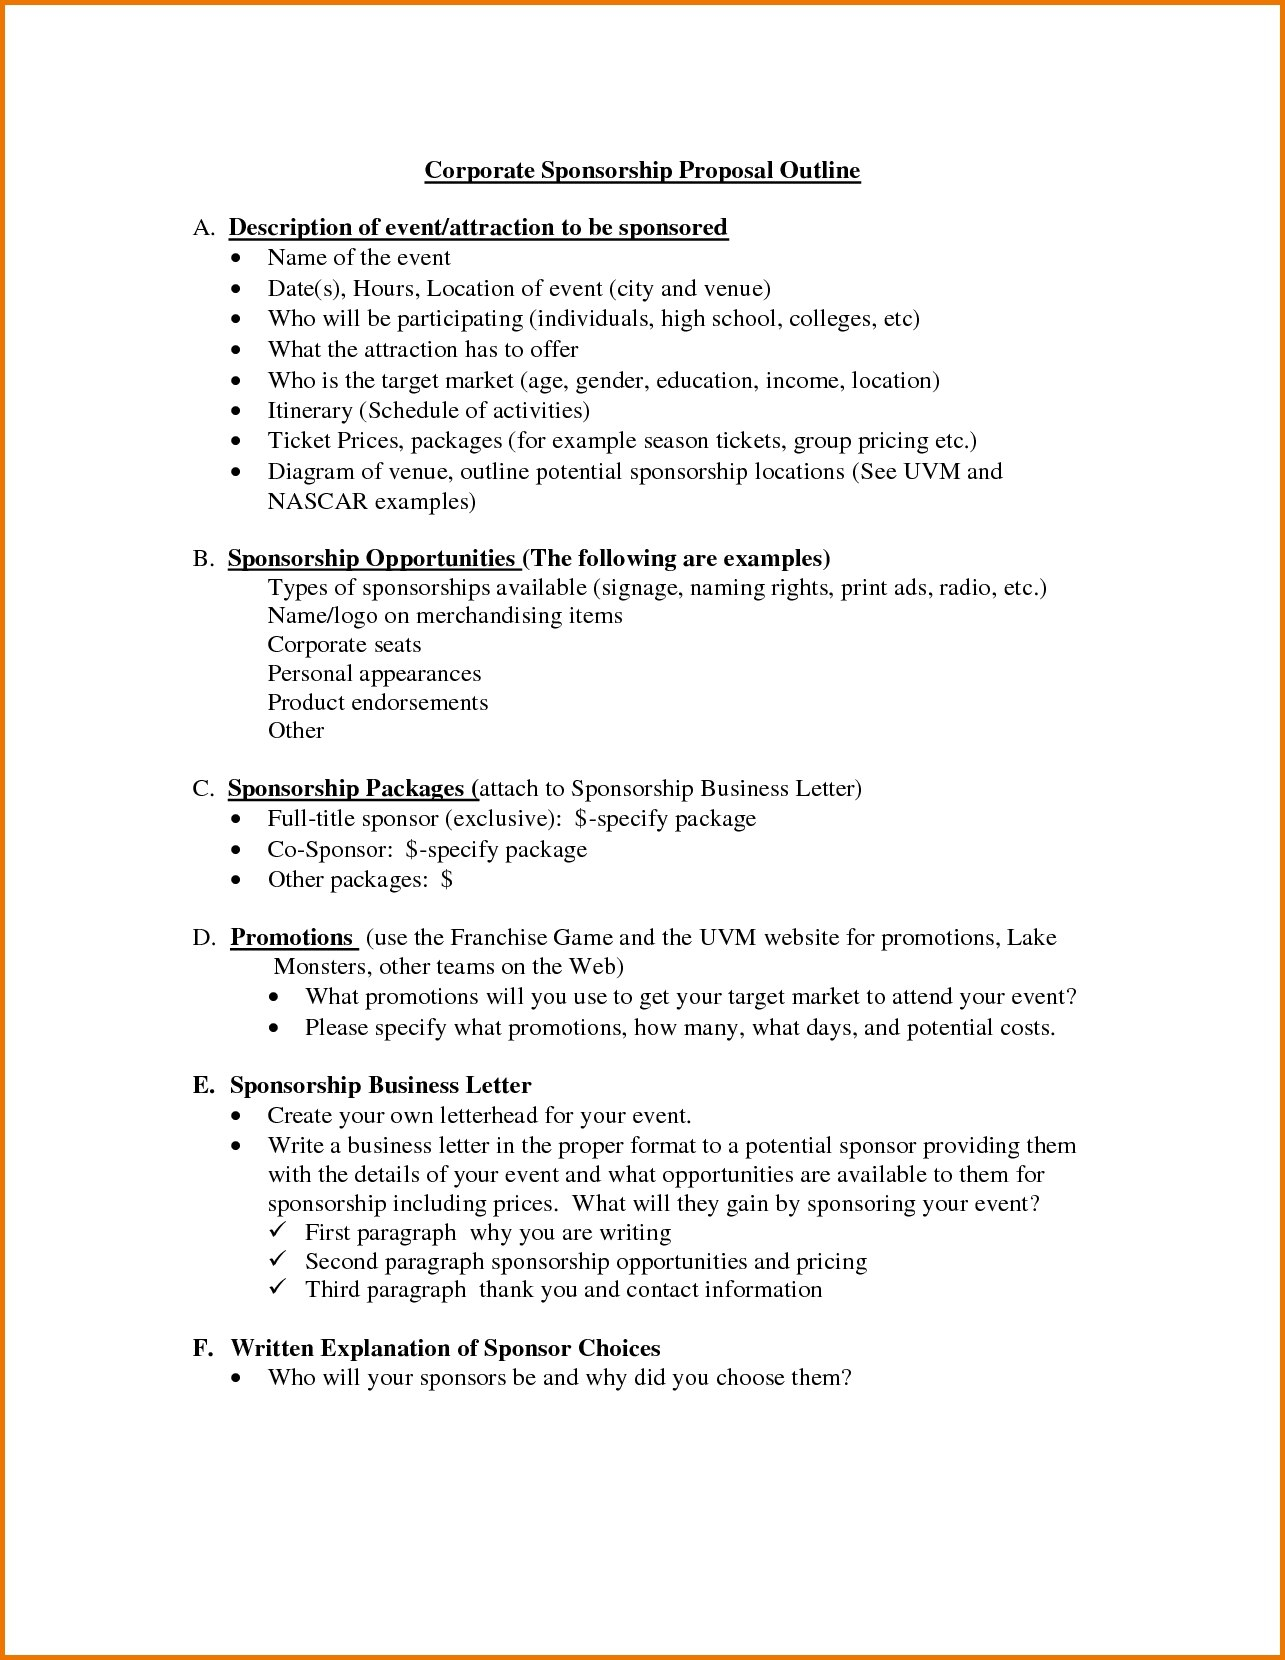 Corporate Sponsorship Proposal Template And Outline Sample For Your In Corporate Sponsorship Proposal Template